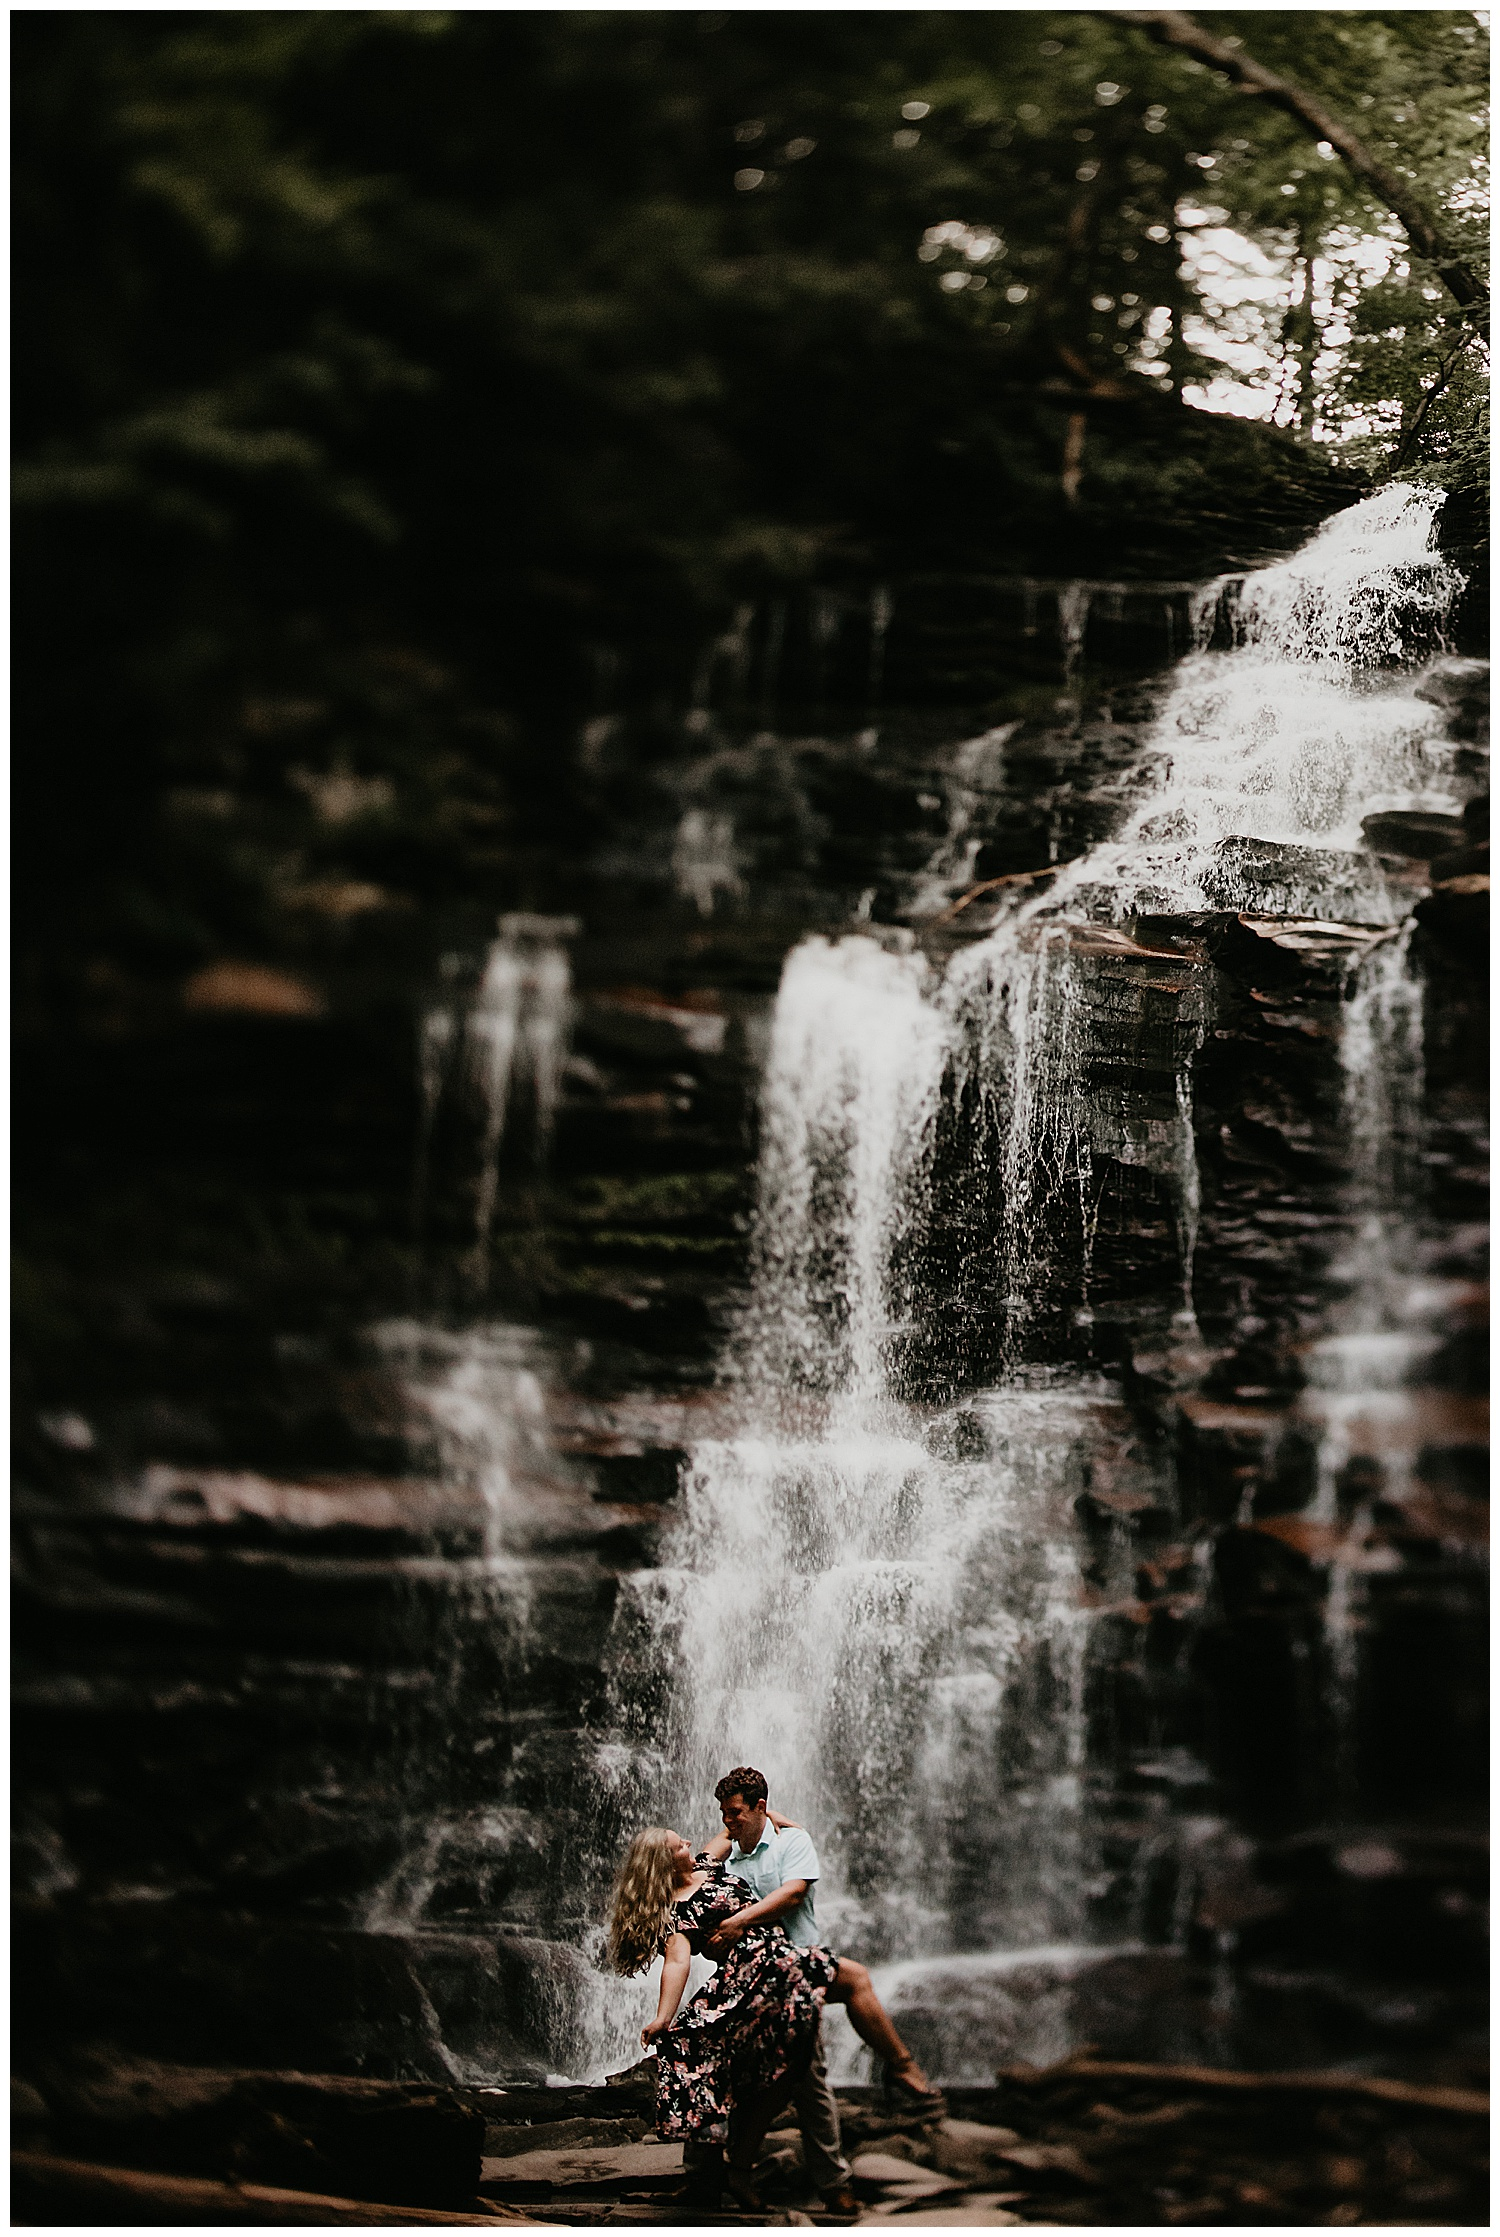 NEPA-Bloomsburg-Lehigh-Valley-Wedding-Photographer-Engagement-session-at-Ricketts-Glen-State-Park_0022.jpg